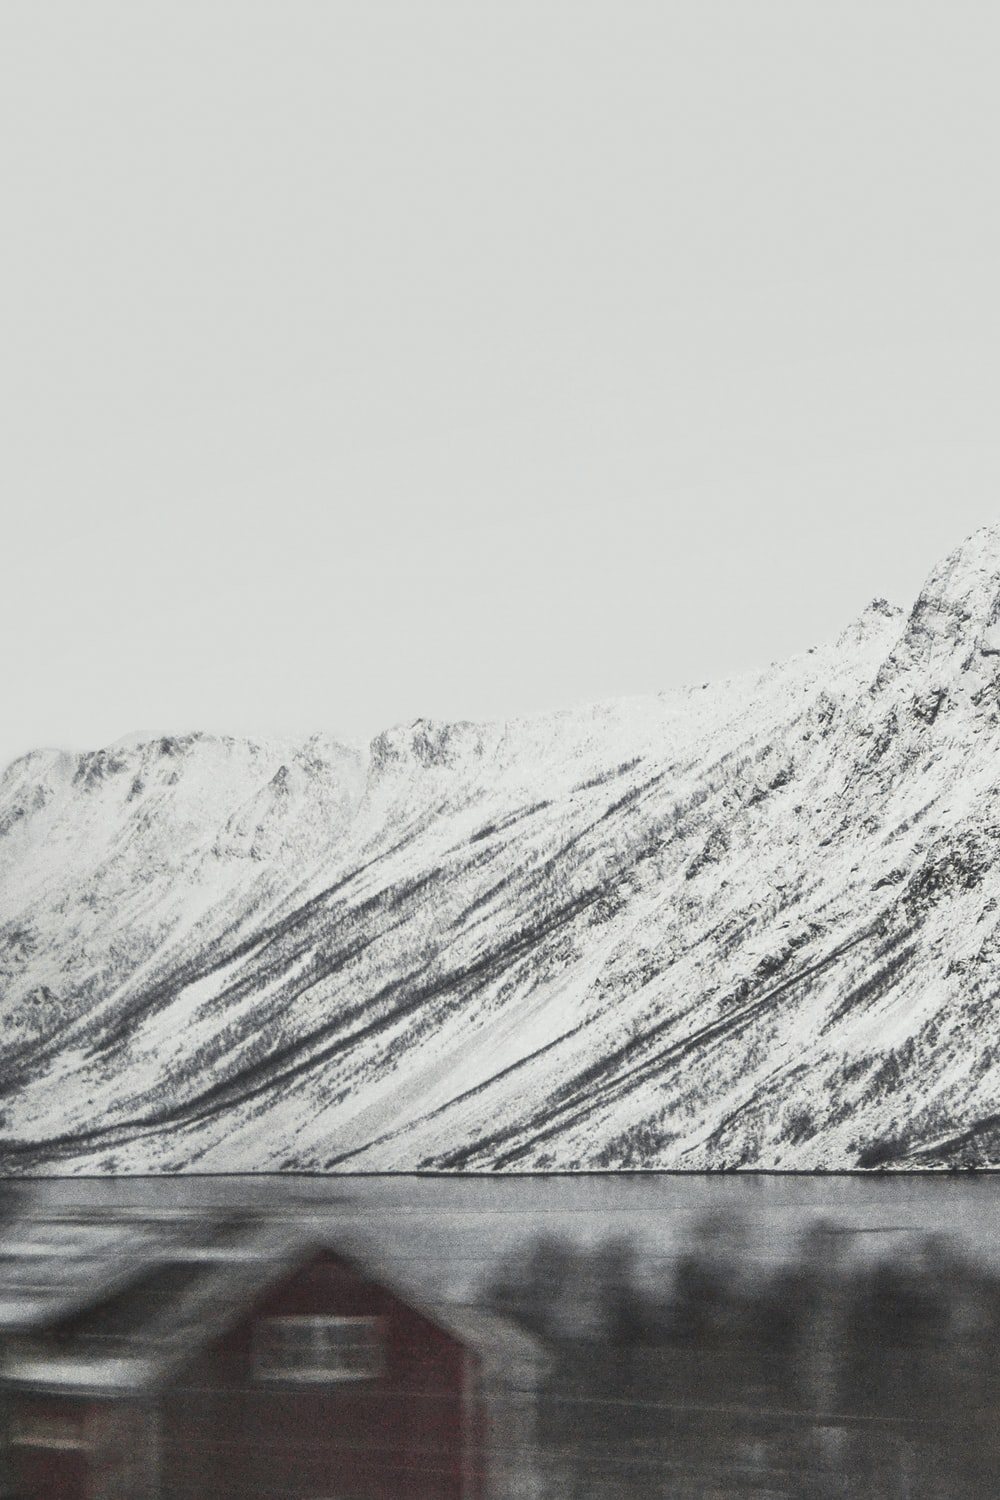 snow-covered mountain by the lake